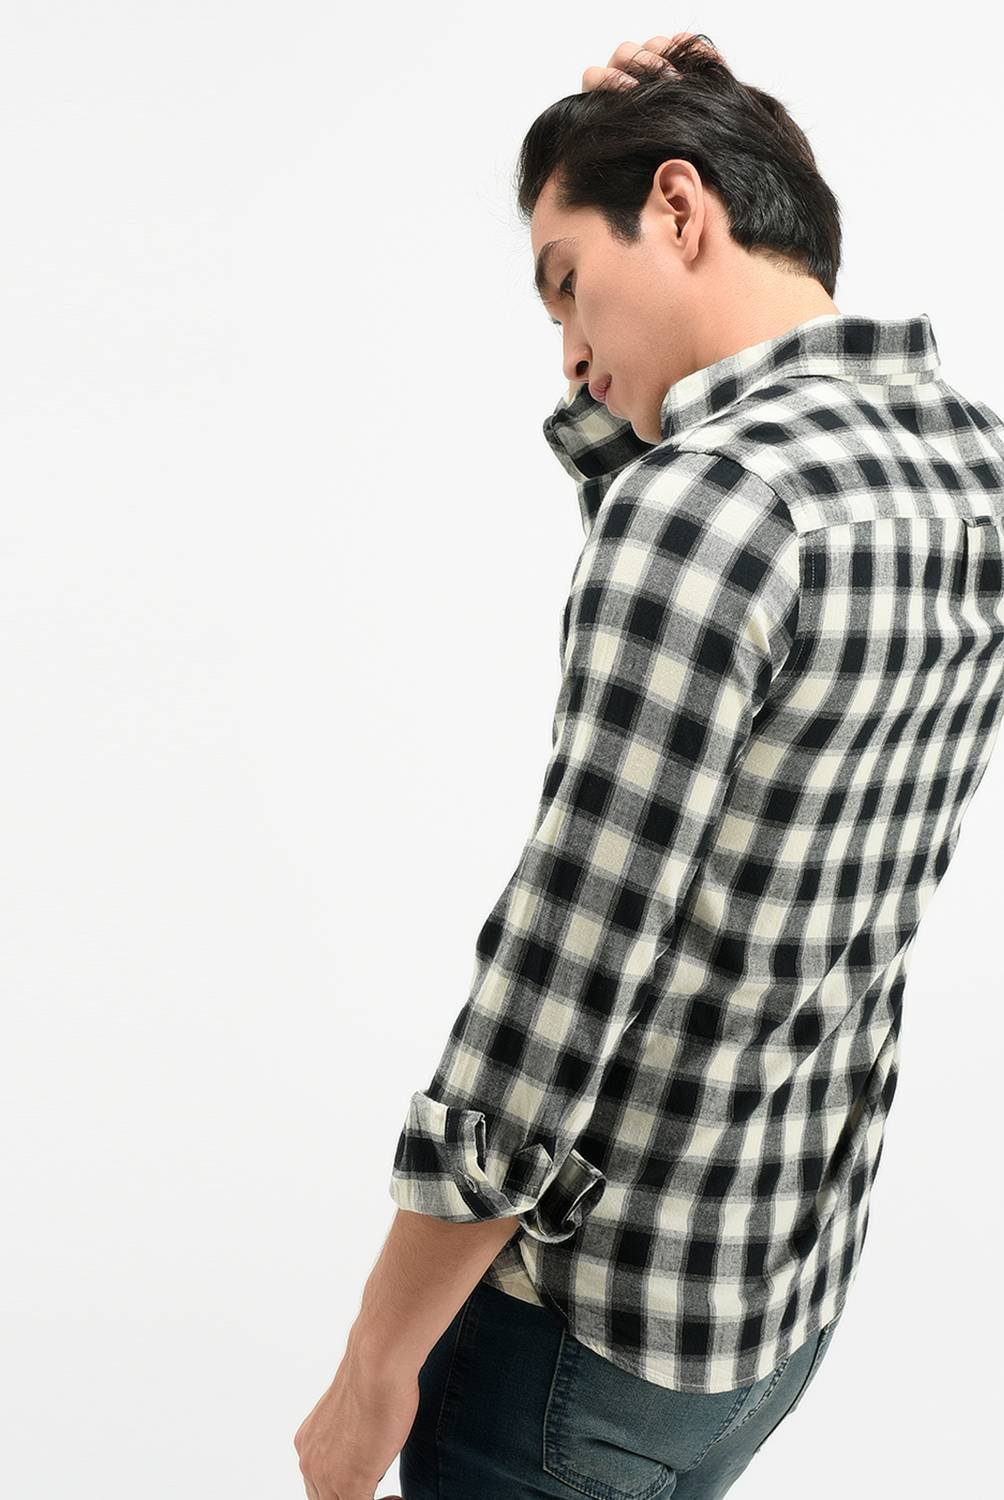 BEARCLIFF - Camisa Hombre